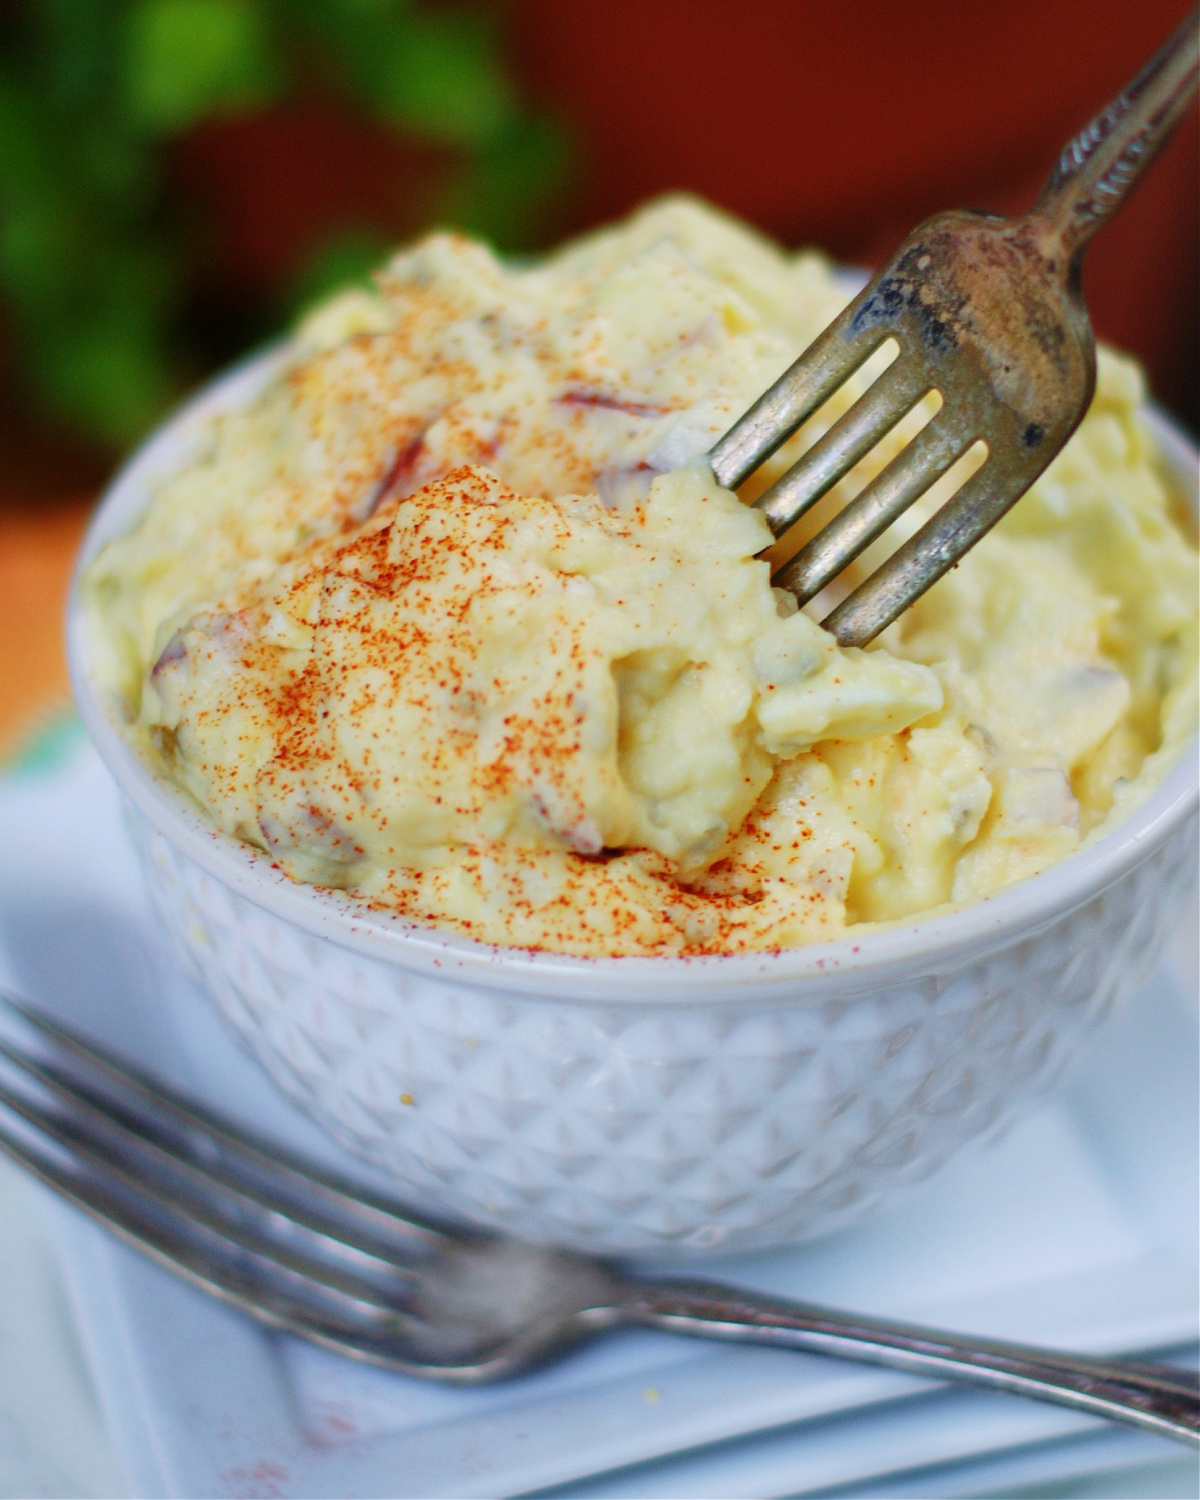 Deviled Egg Potato Salad on a fork to provide anothe close up view.